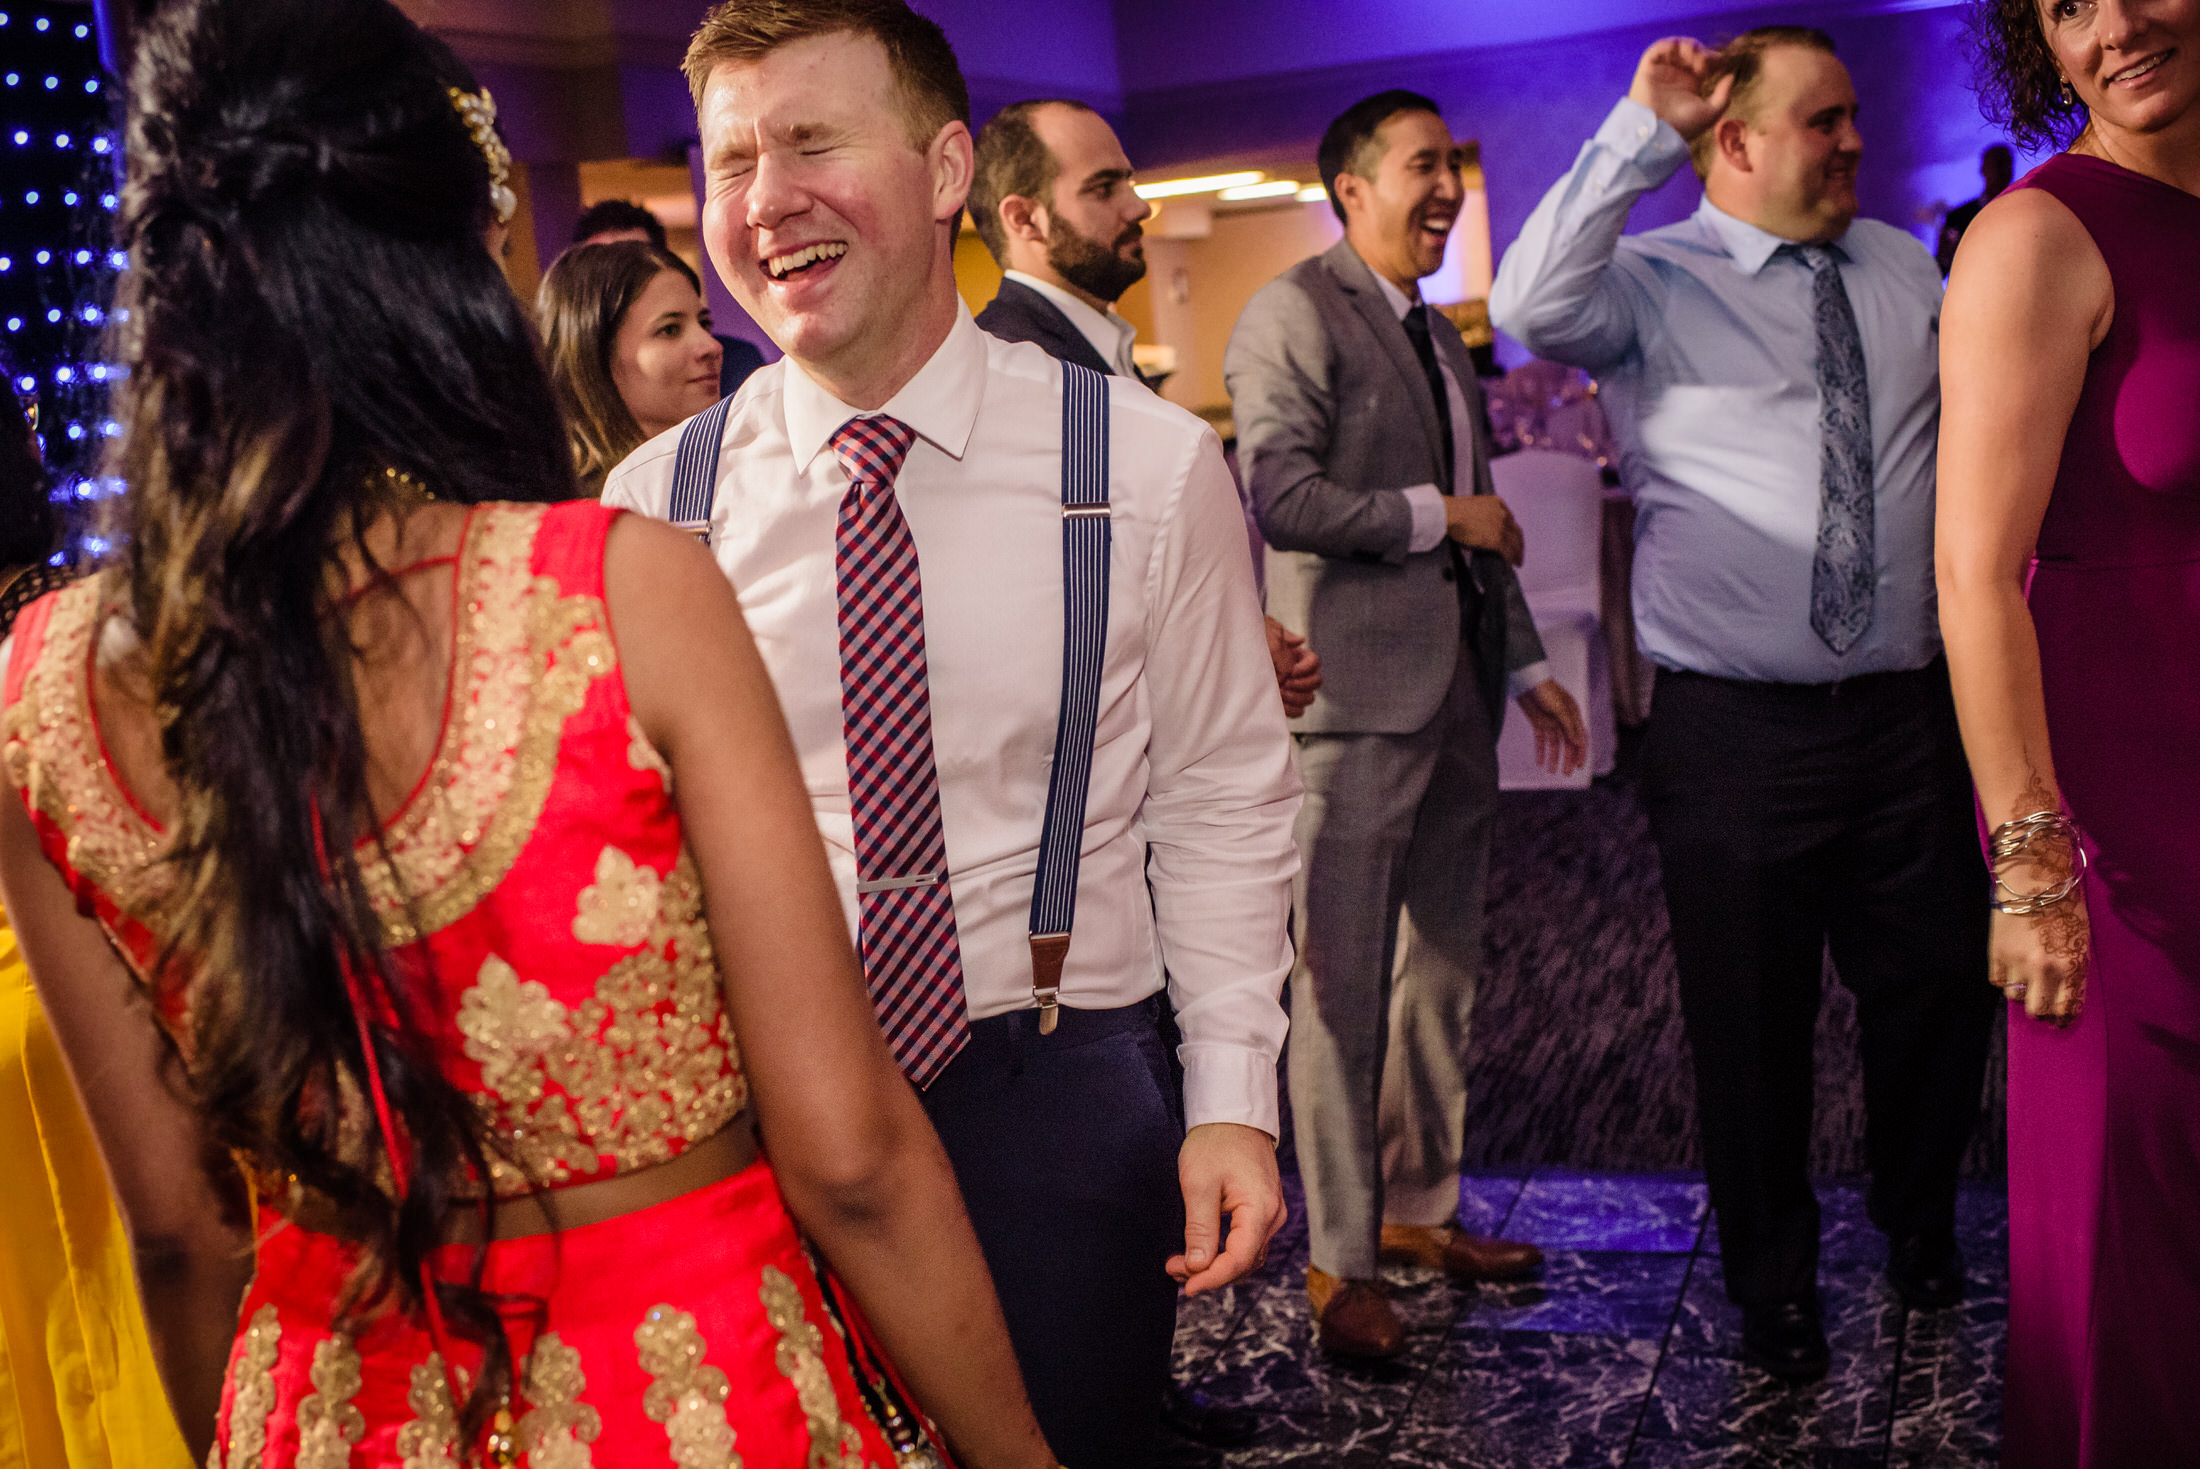 SwathiNeil_hindu_wedding_edmonton_photographer_66.jpg